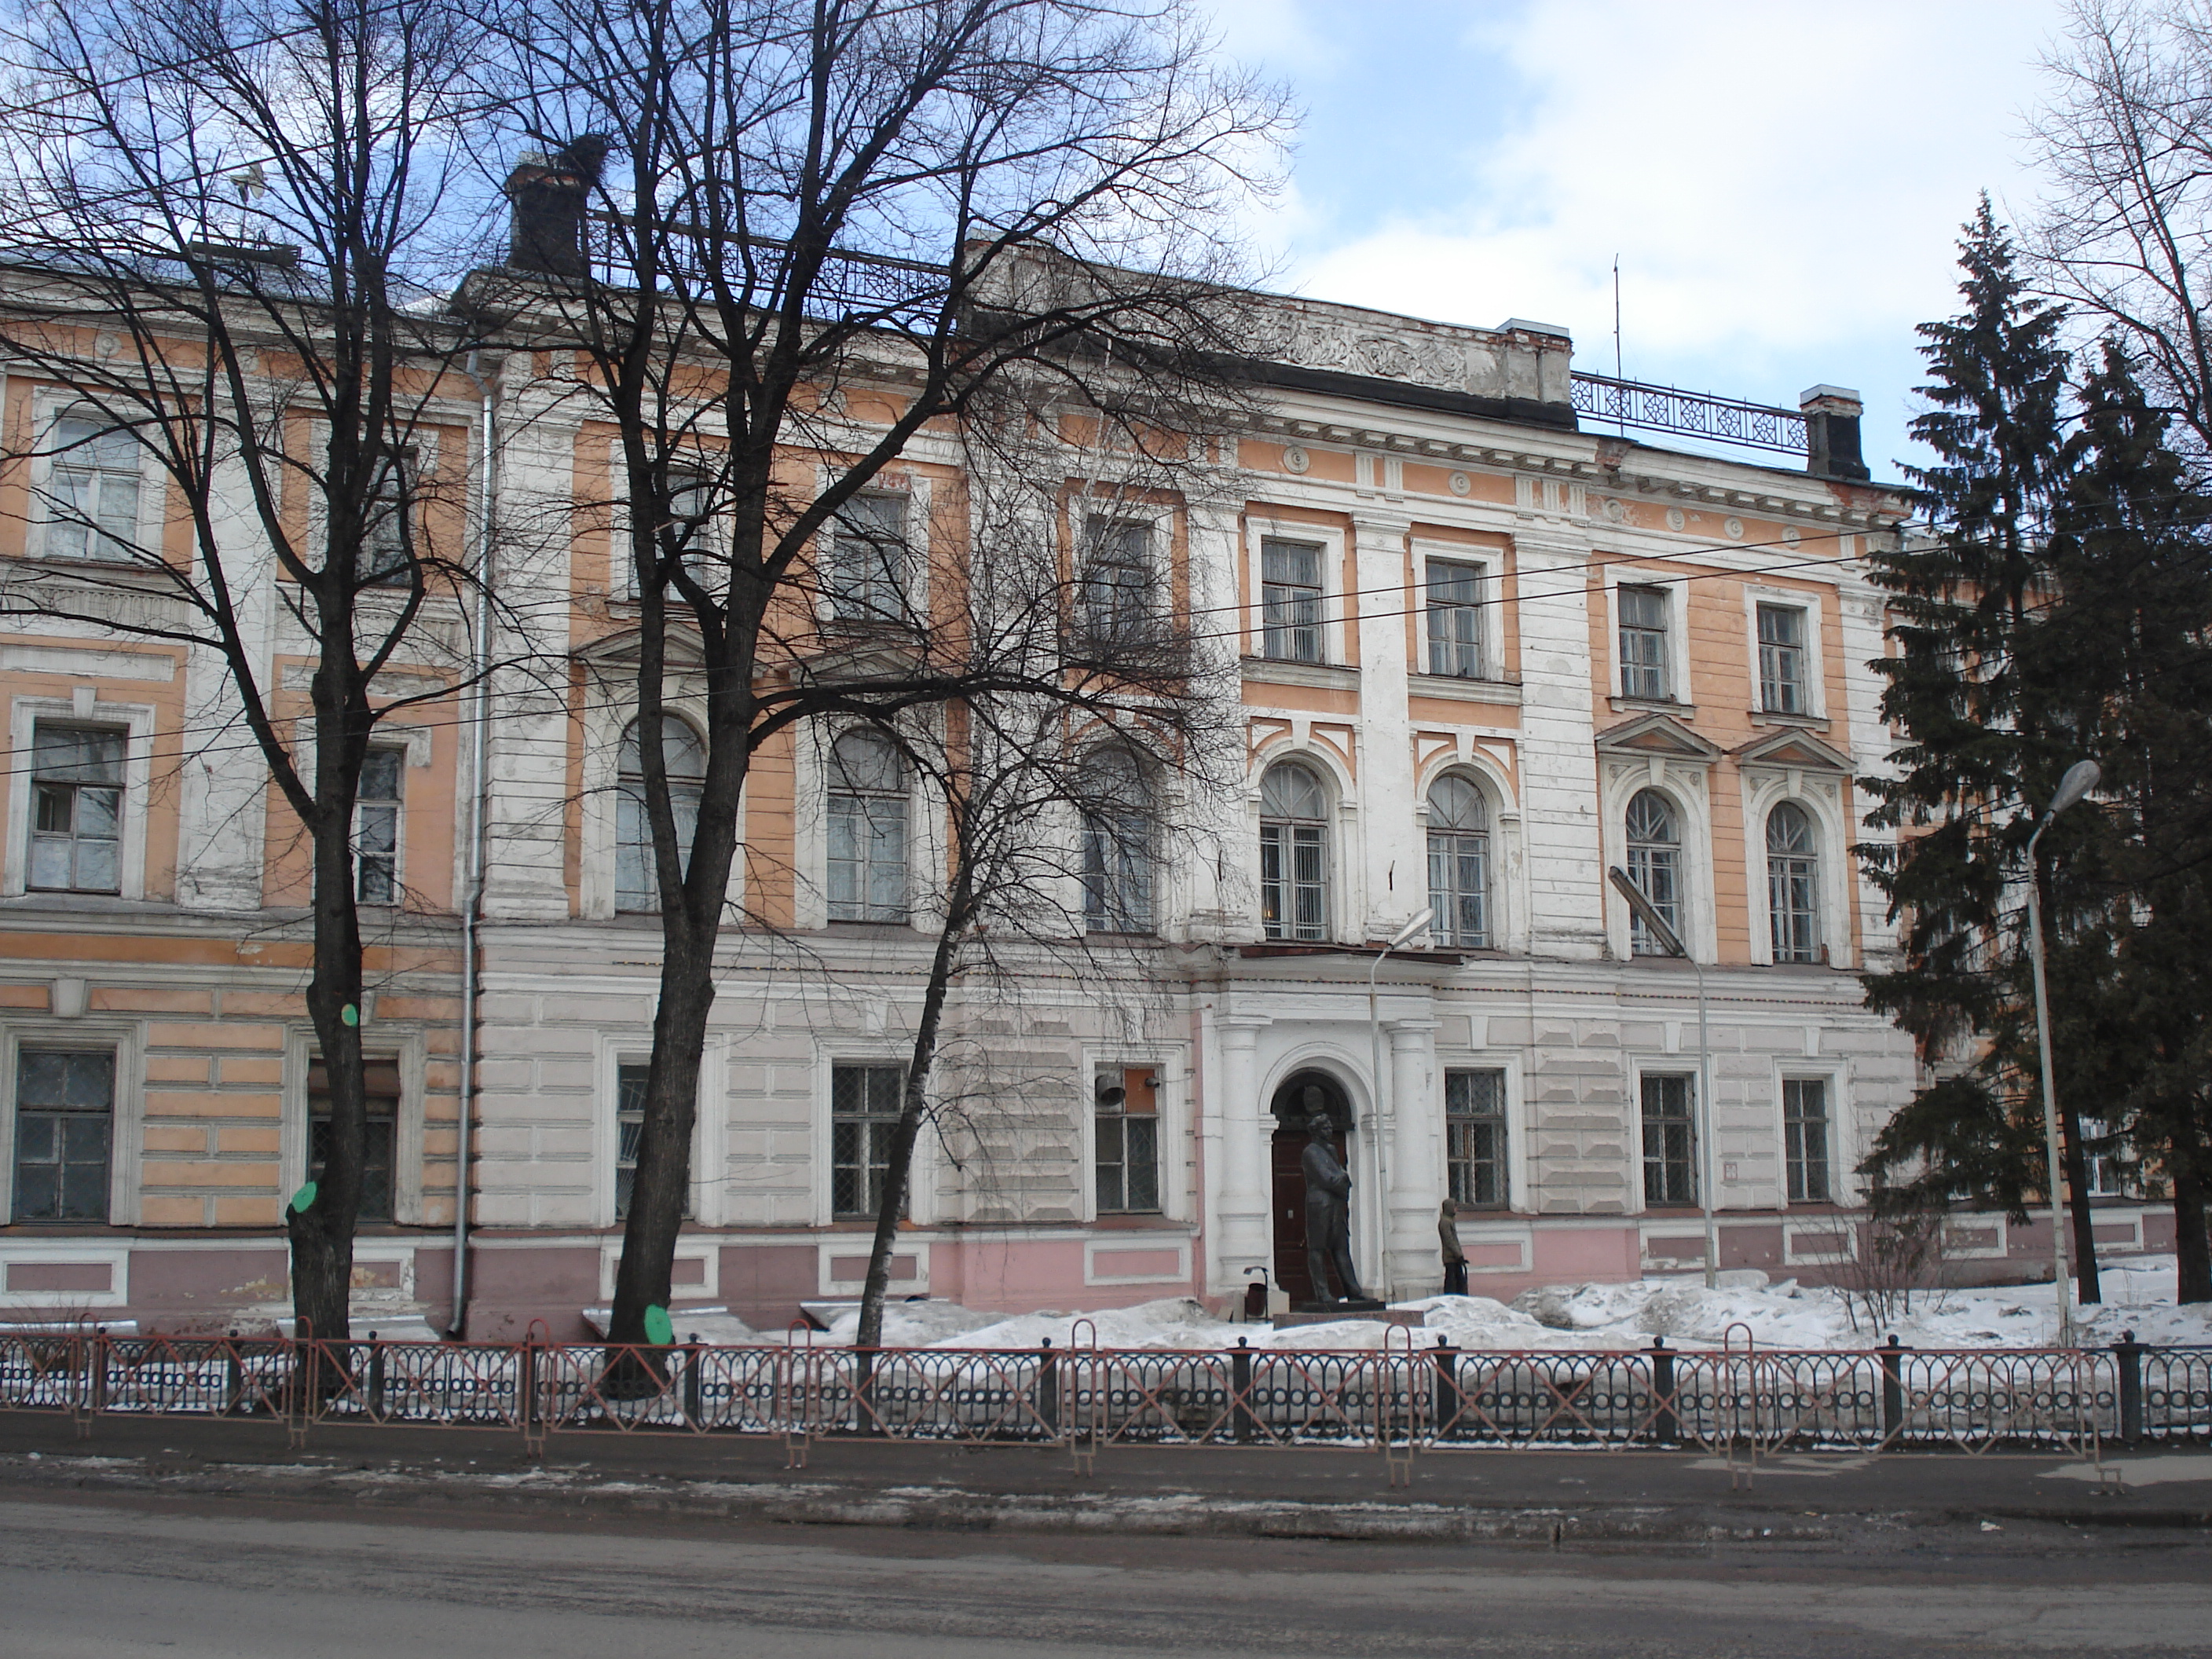 The main building of the Demidov State University, Red Square.